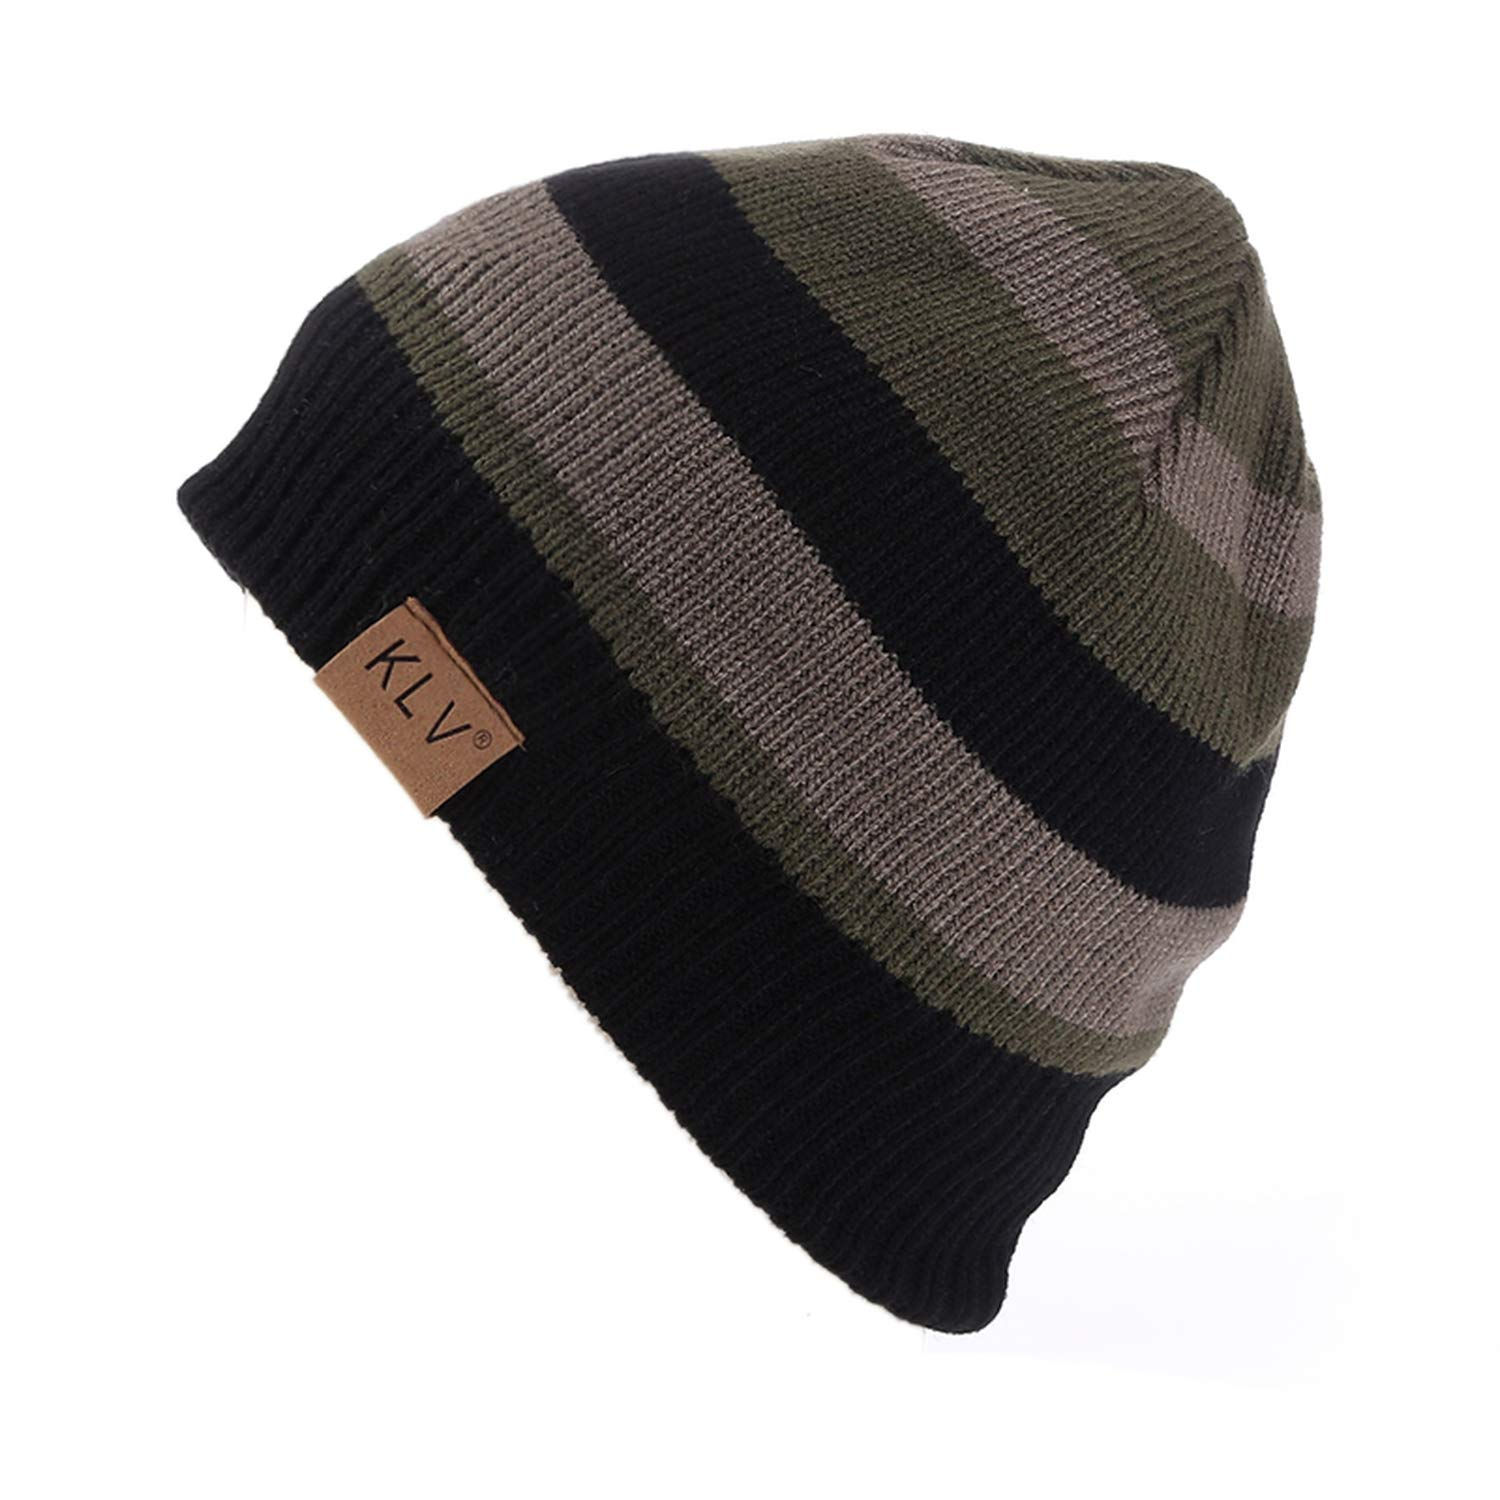 4d3f7ae8 Amazon.com: XINBONG 2018 Unisex Knitted Women's Hats Striped Skullies  Winter hat Female Thick Falls Cap Youth Wool Beanies Army Green: Clothing